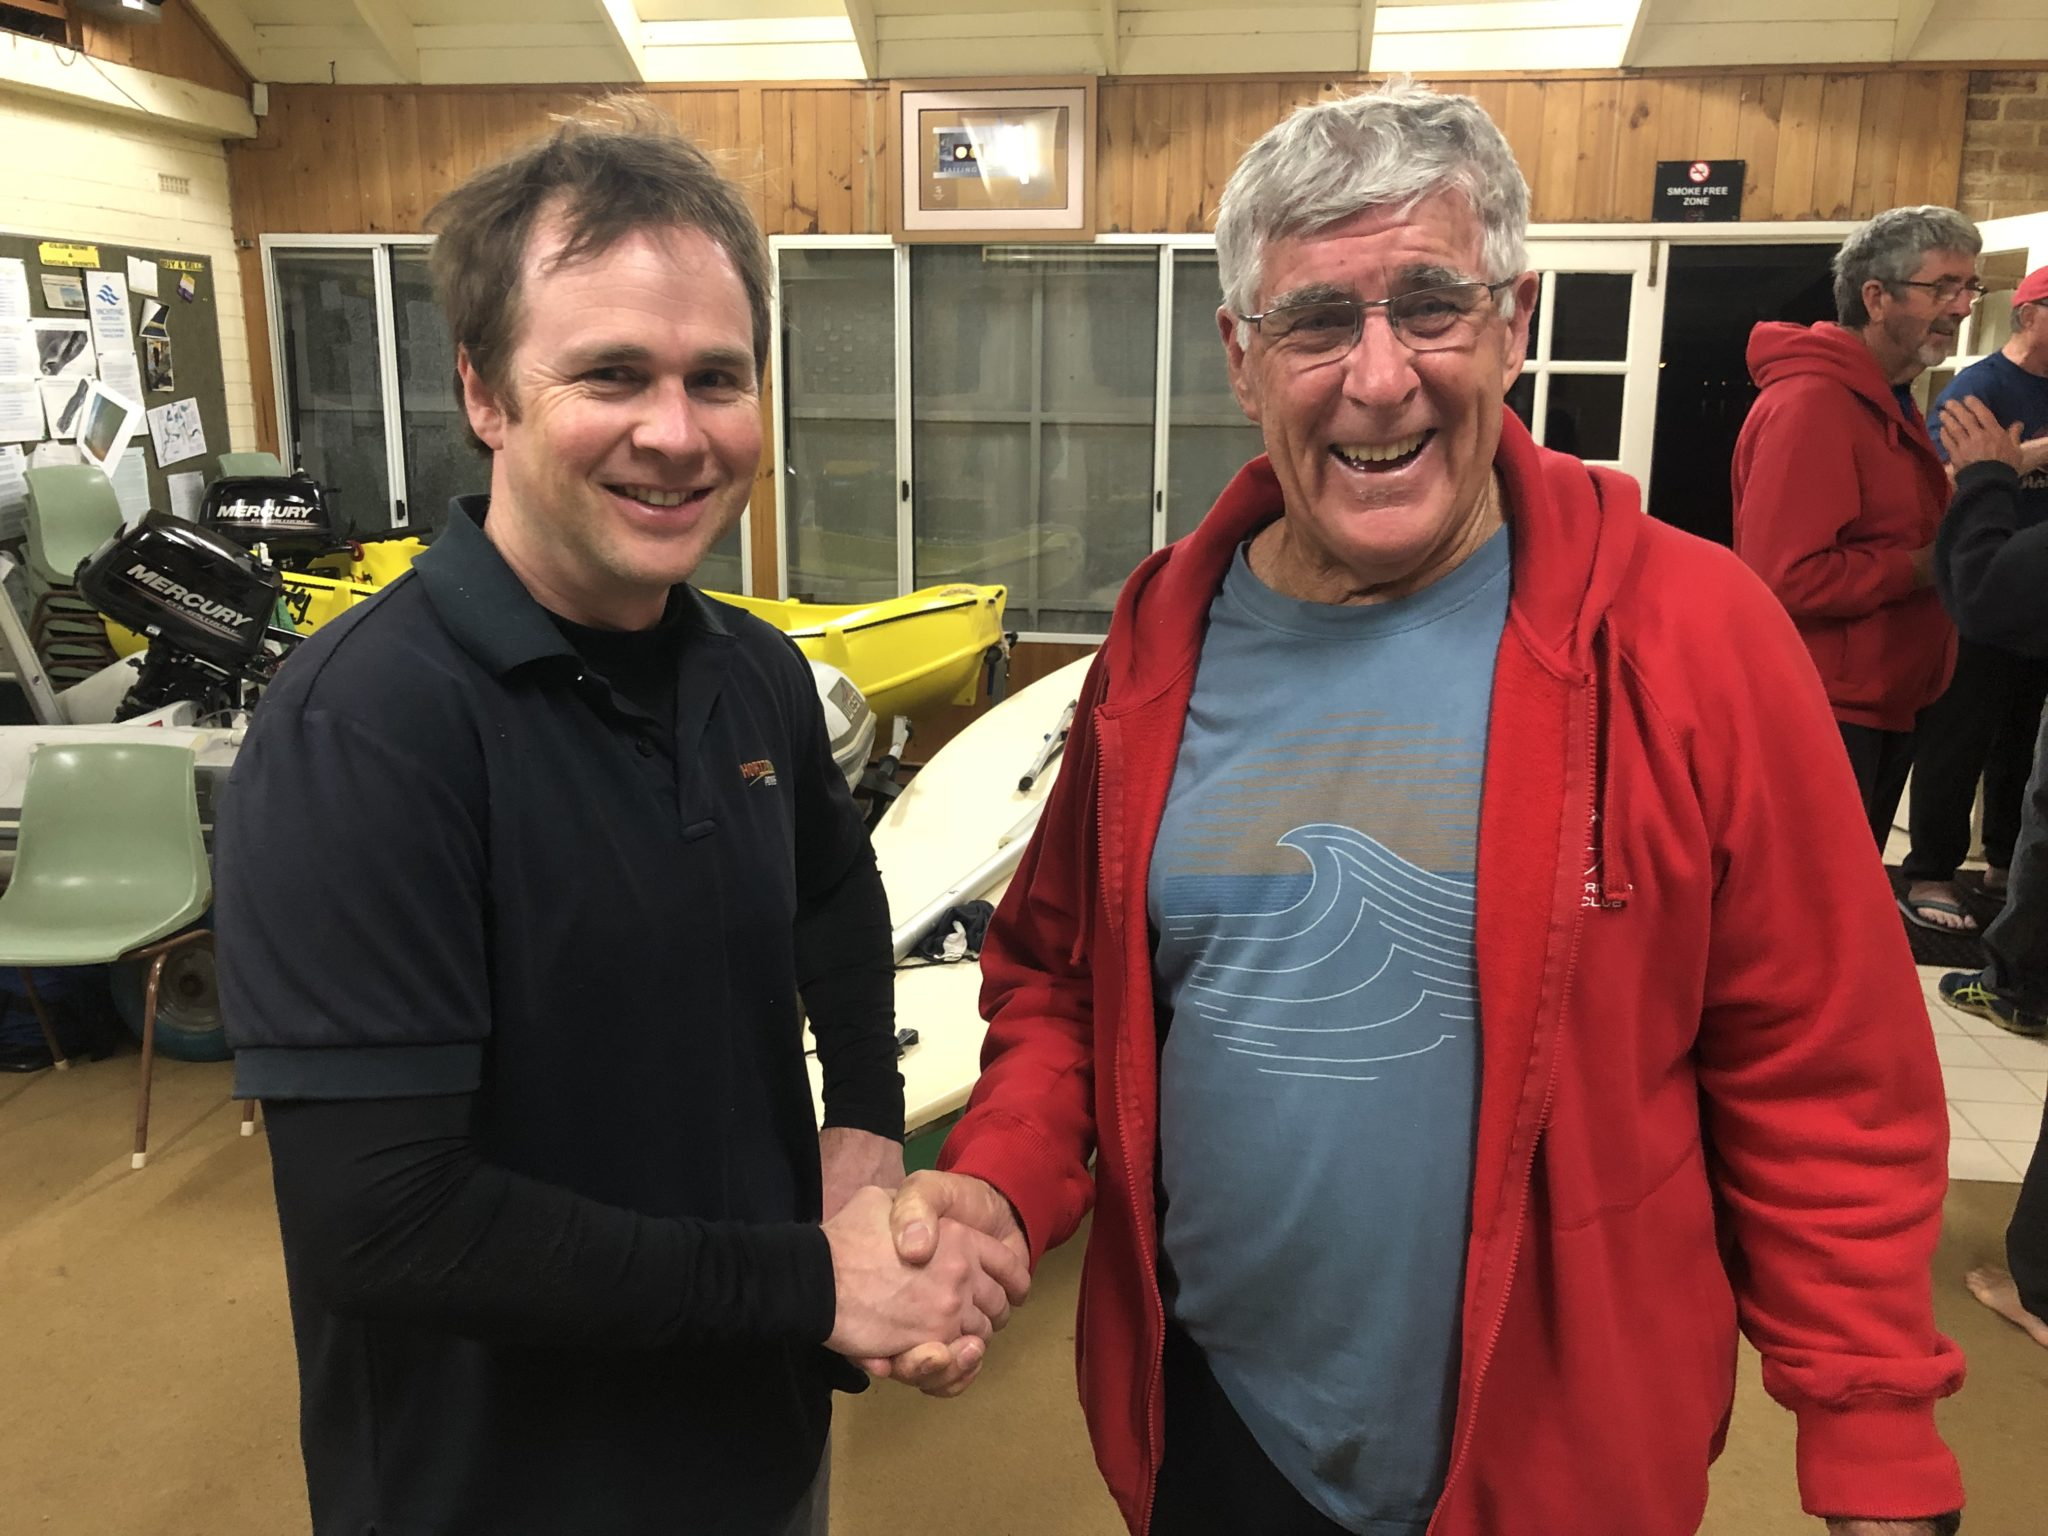 Tuesday 27th August 2019 : Tonight's photo shows club member Dave Stevens presenting Joe Wilson with the winners movie voucher.